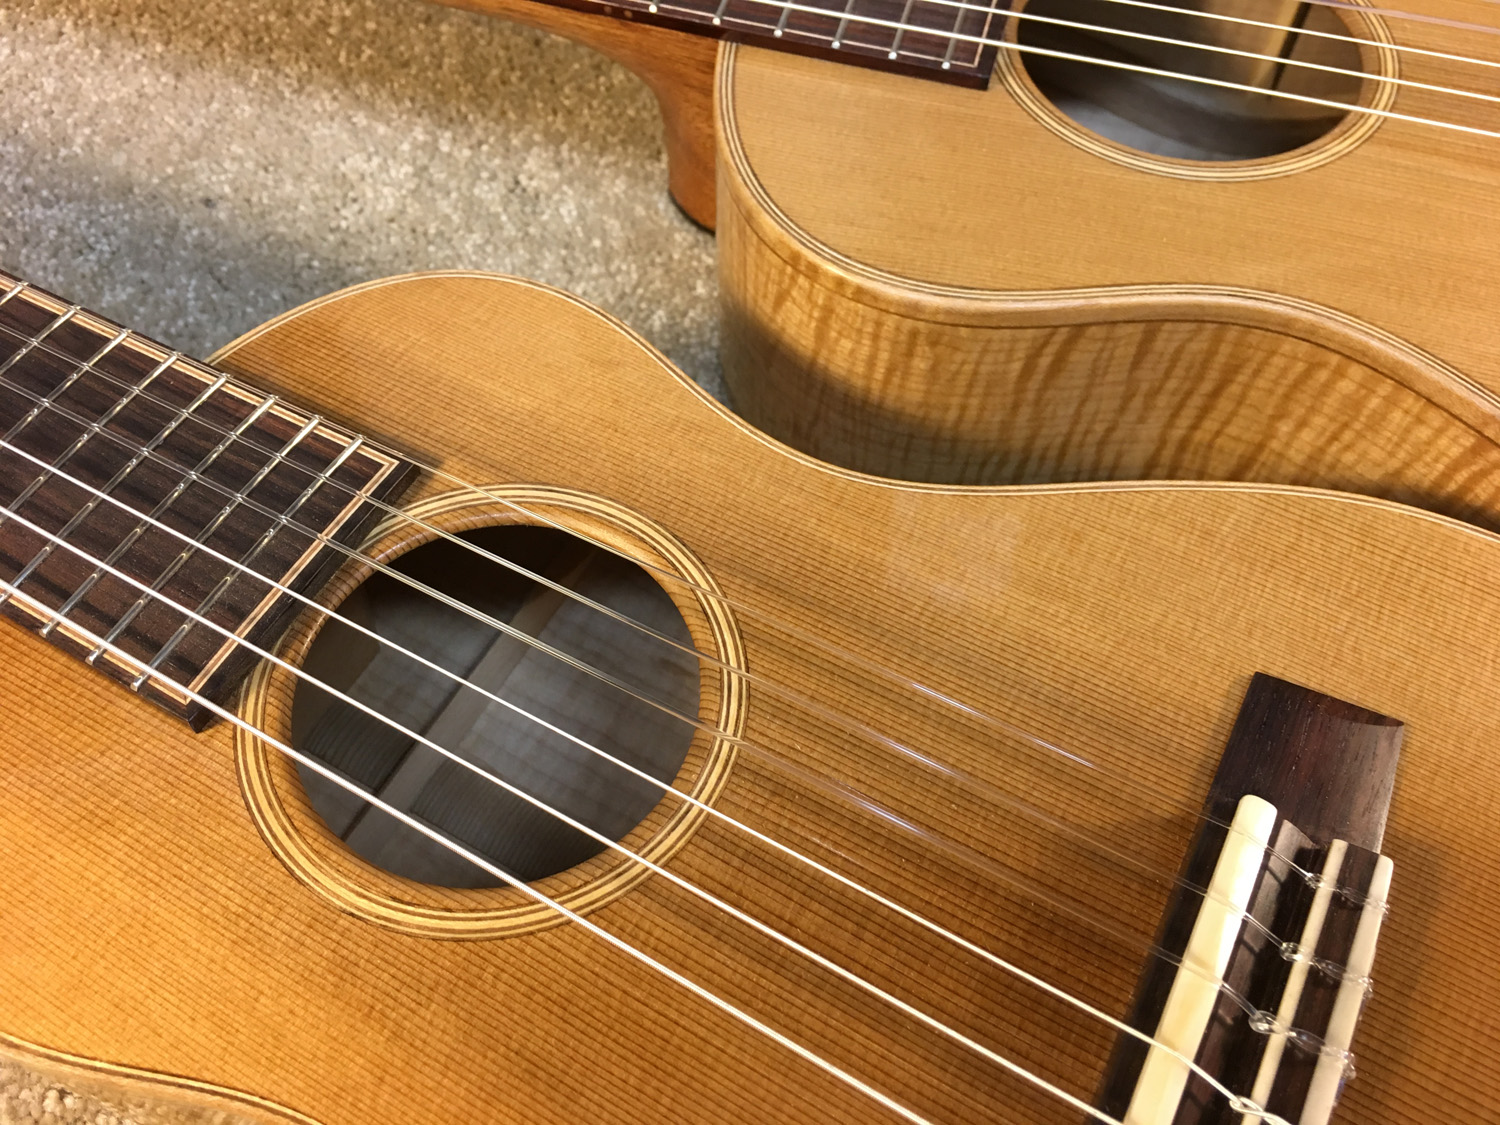 Six strings - Baritone and Tenor size bodies.